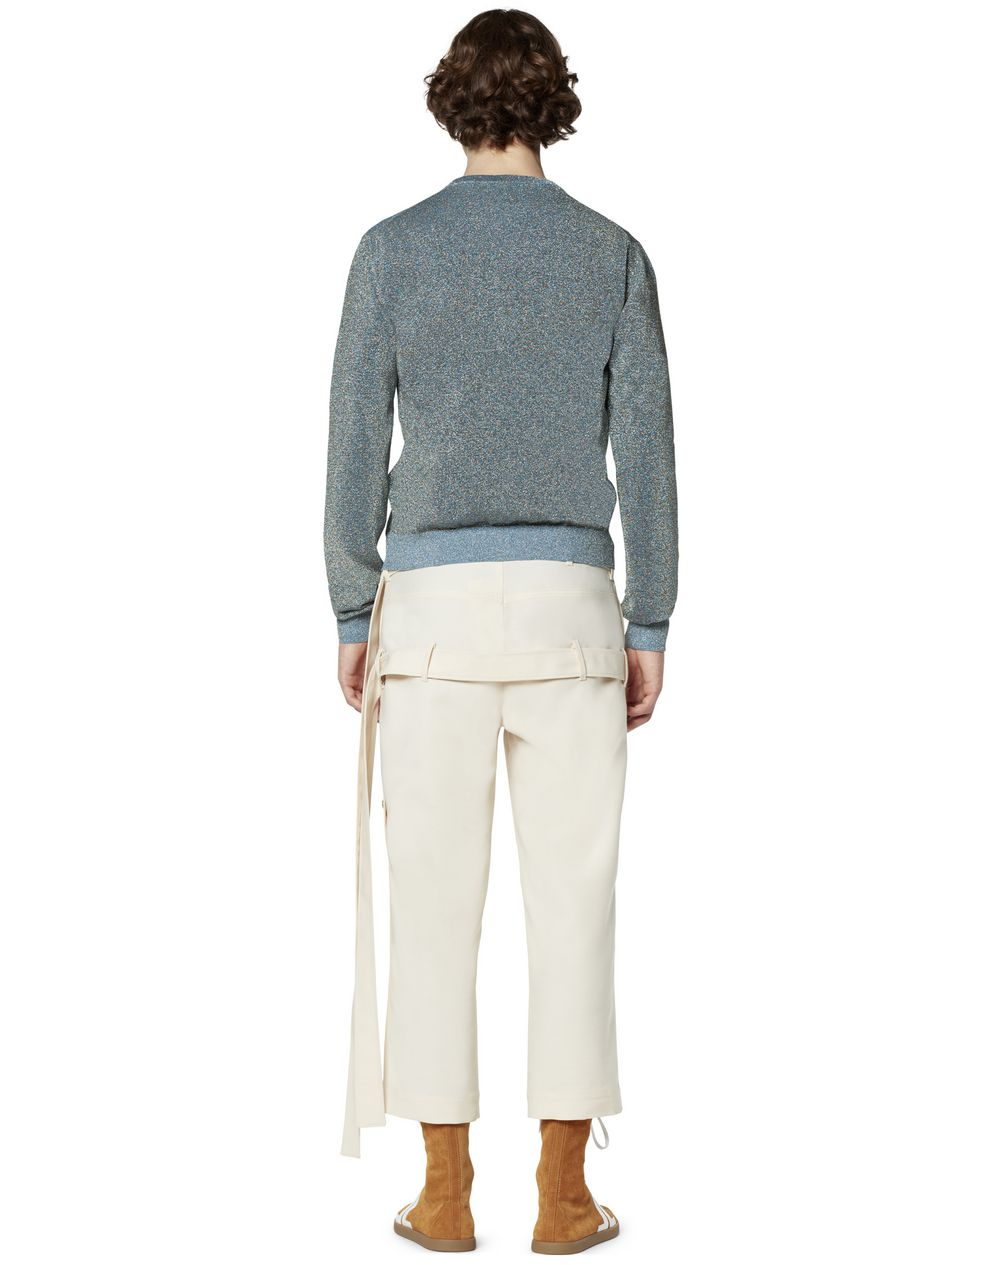 CROPPED TROUSERS WITH DOUBLE BELT - Lanvin